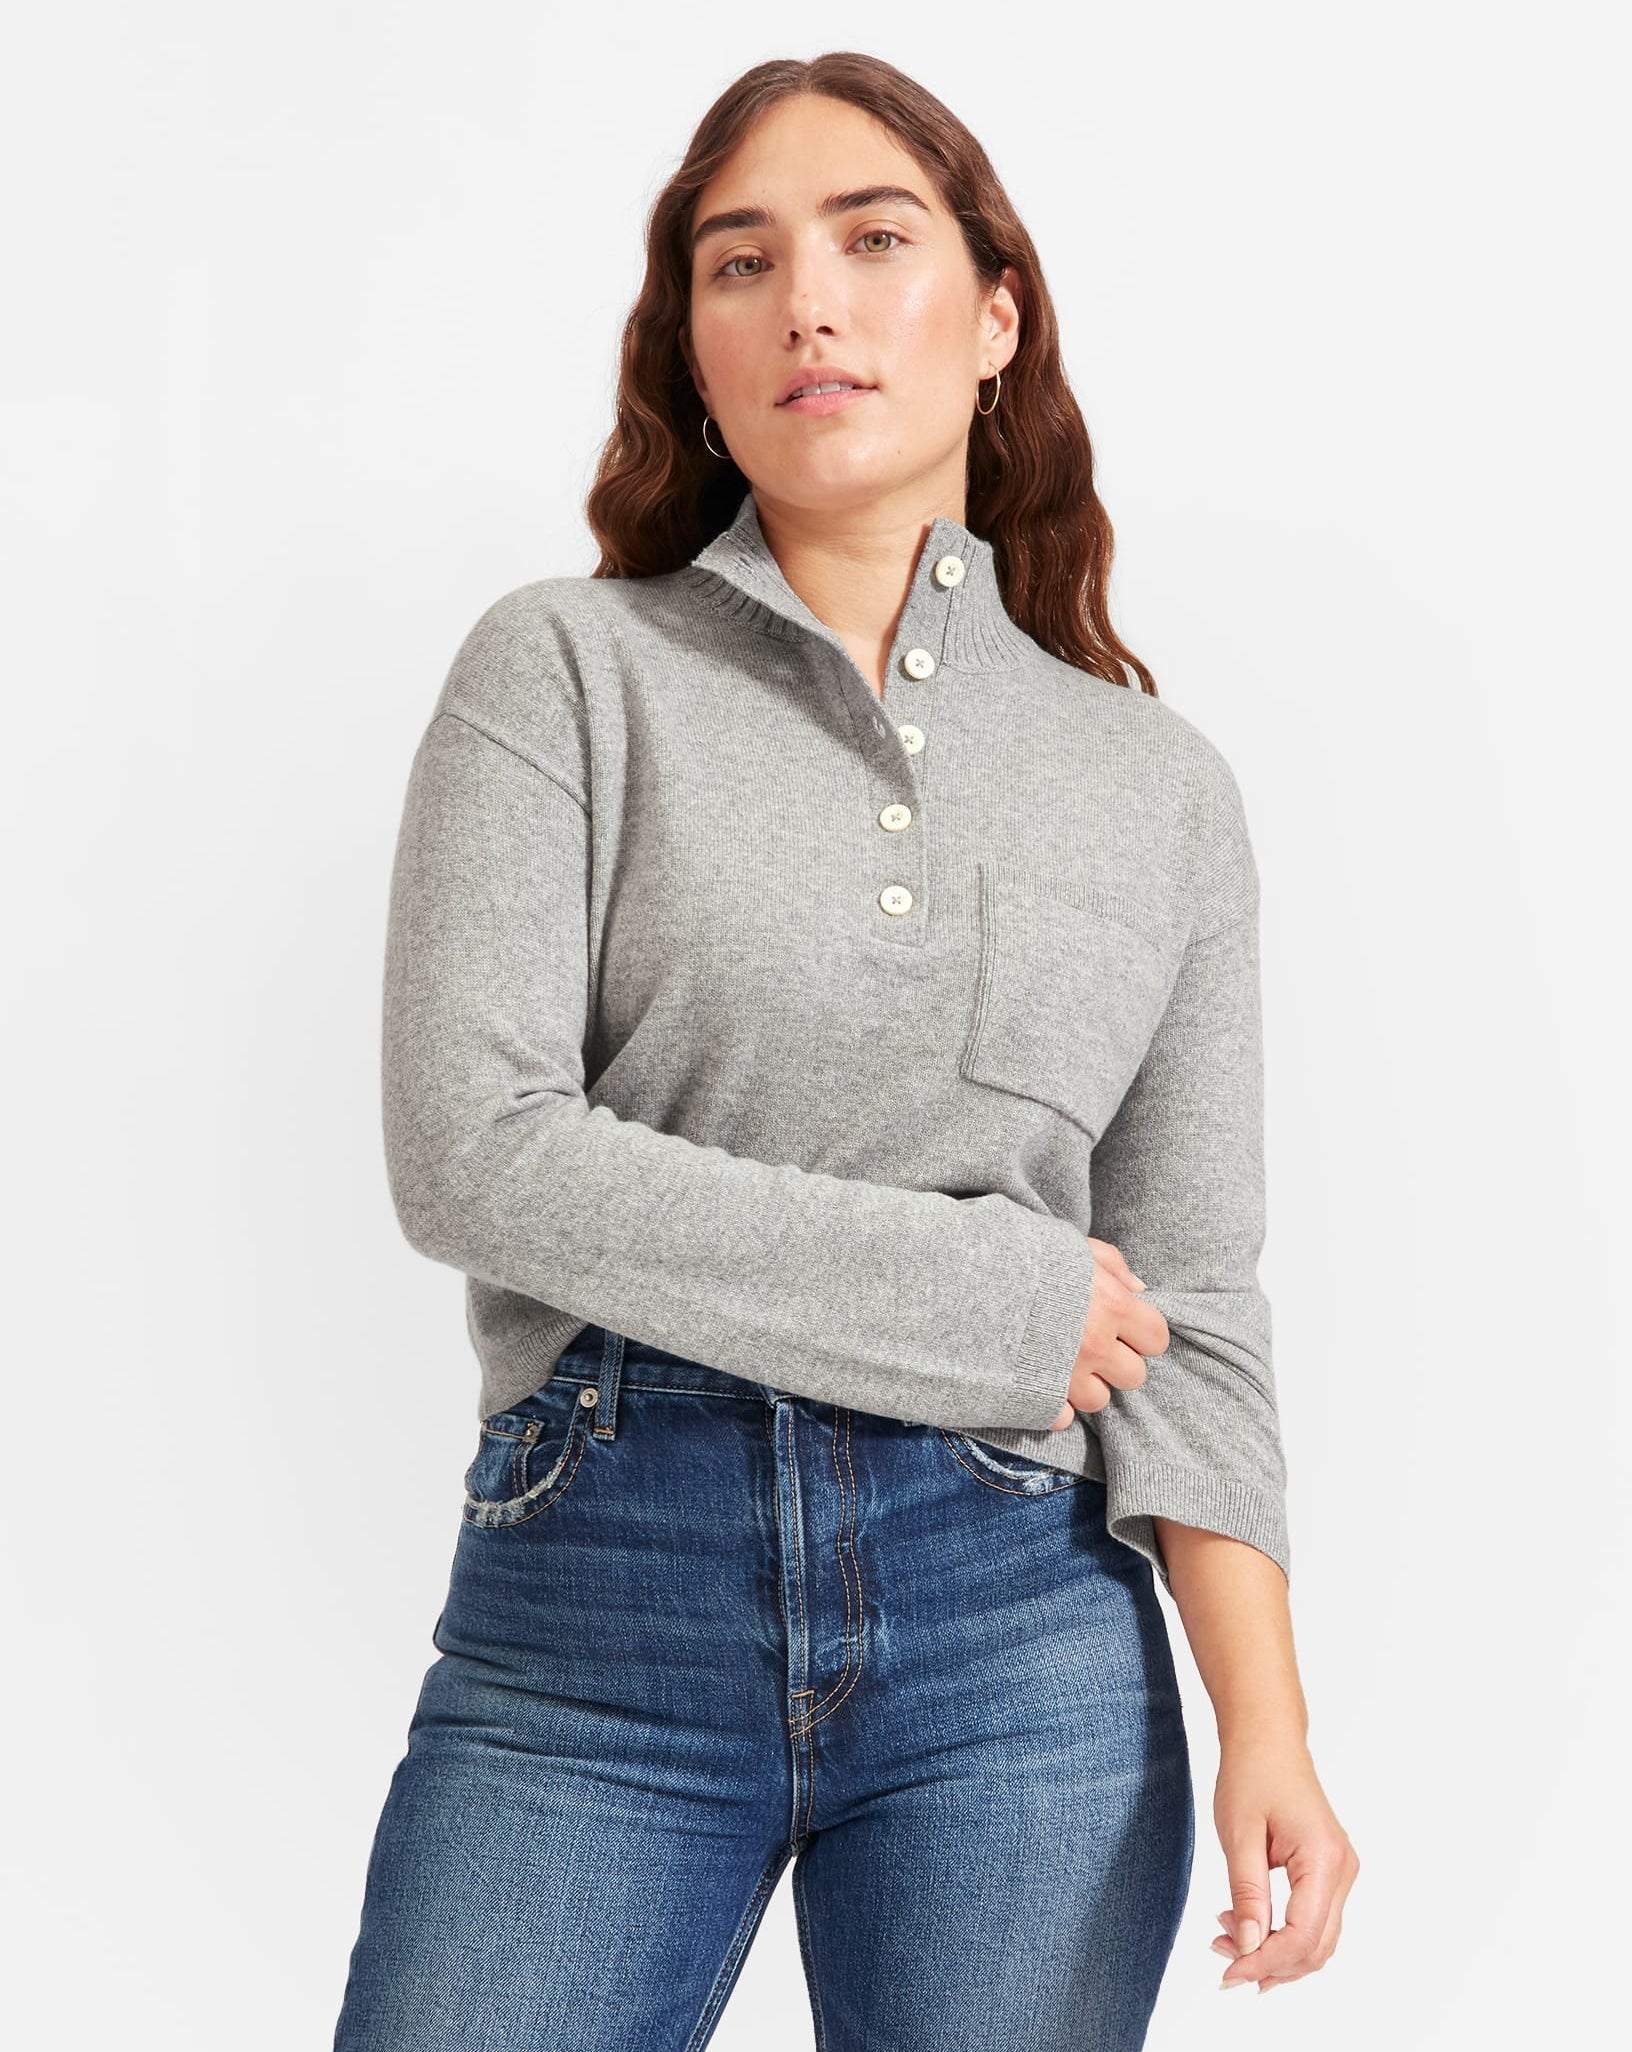 model in light grey long sleeve sweater with henley-style buttons